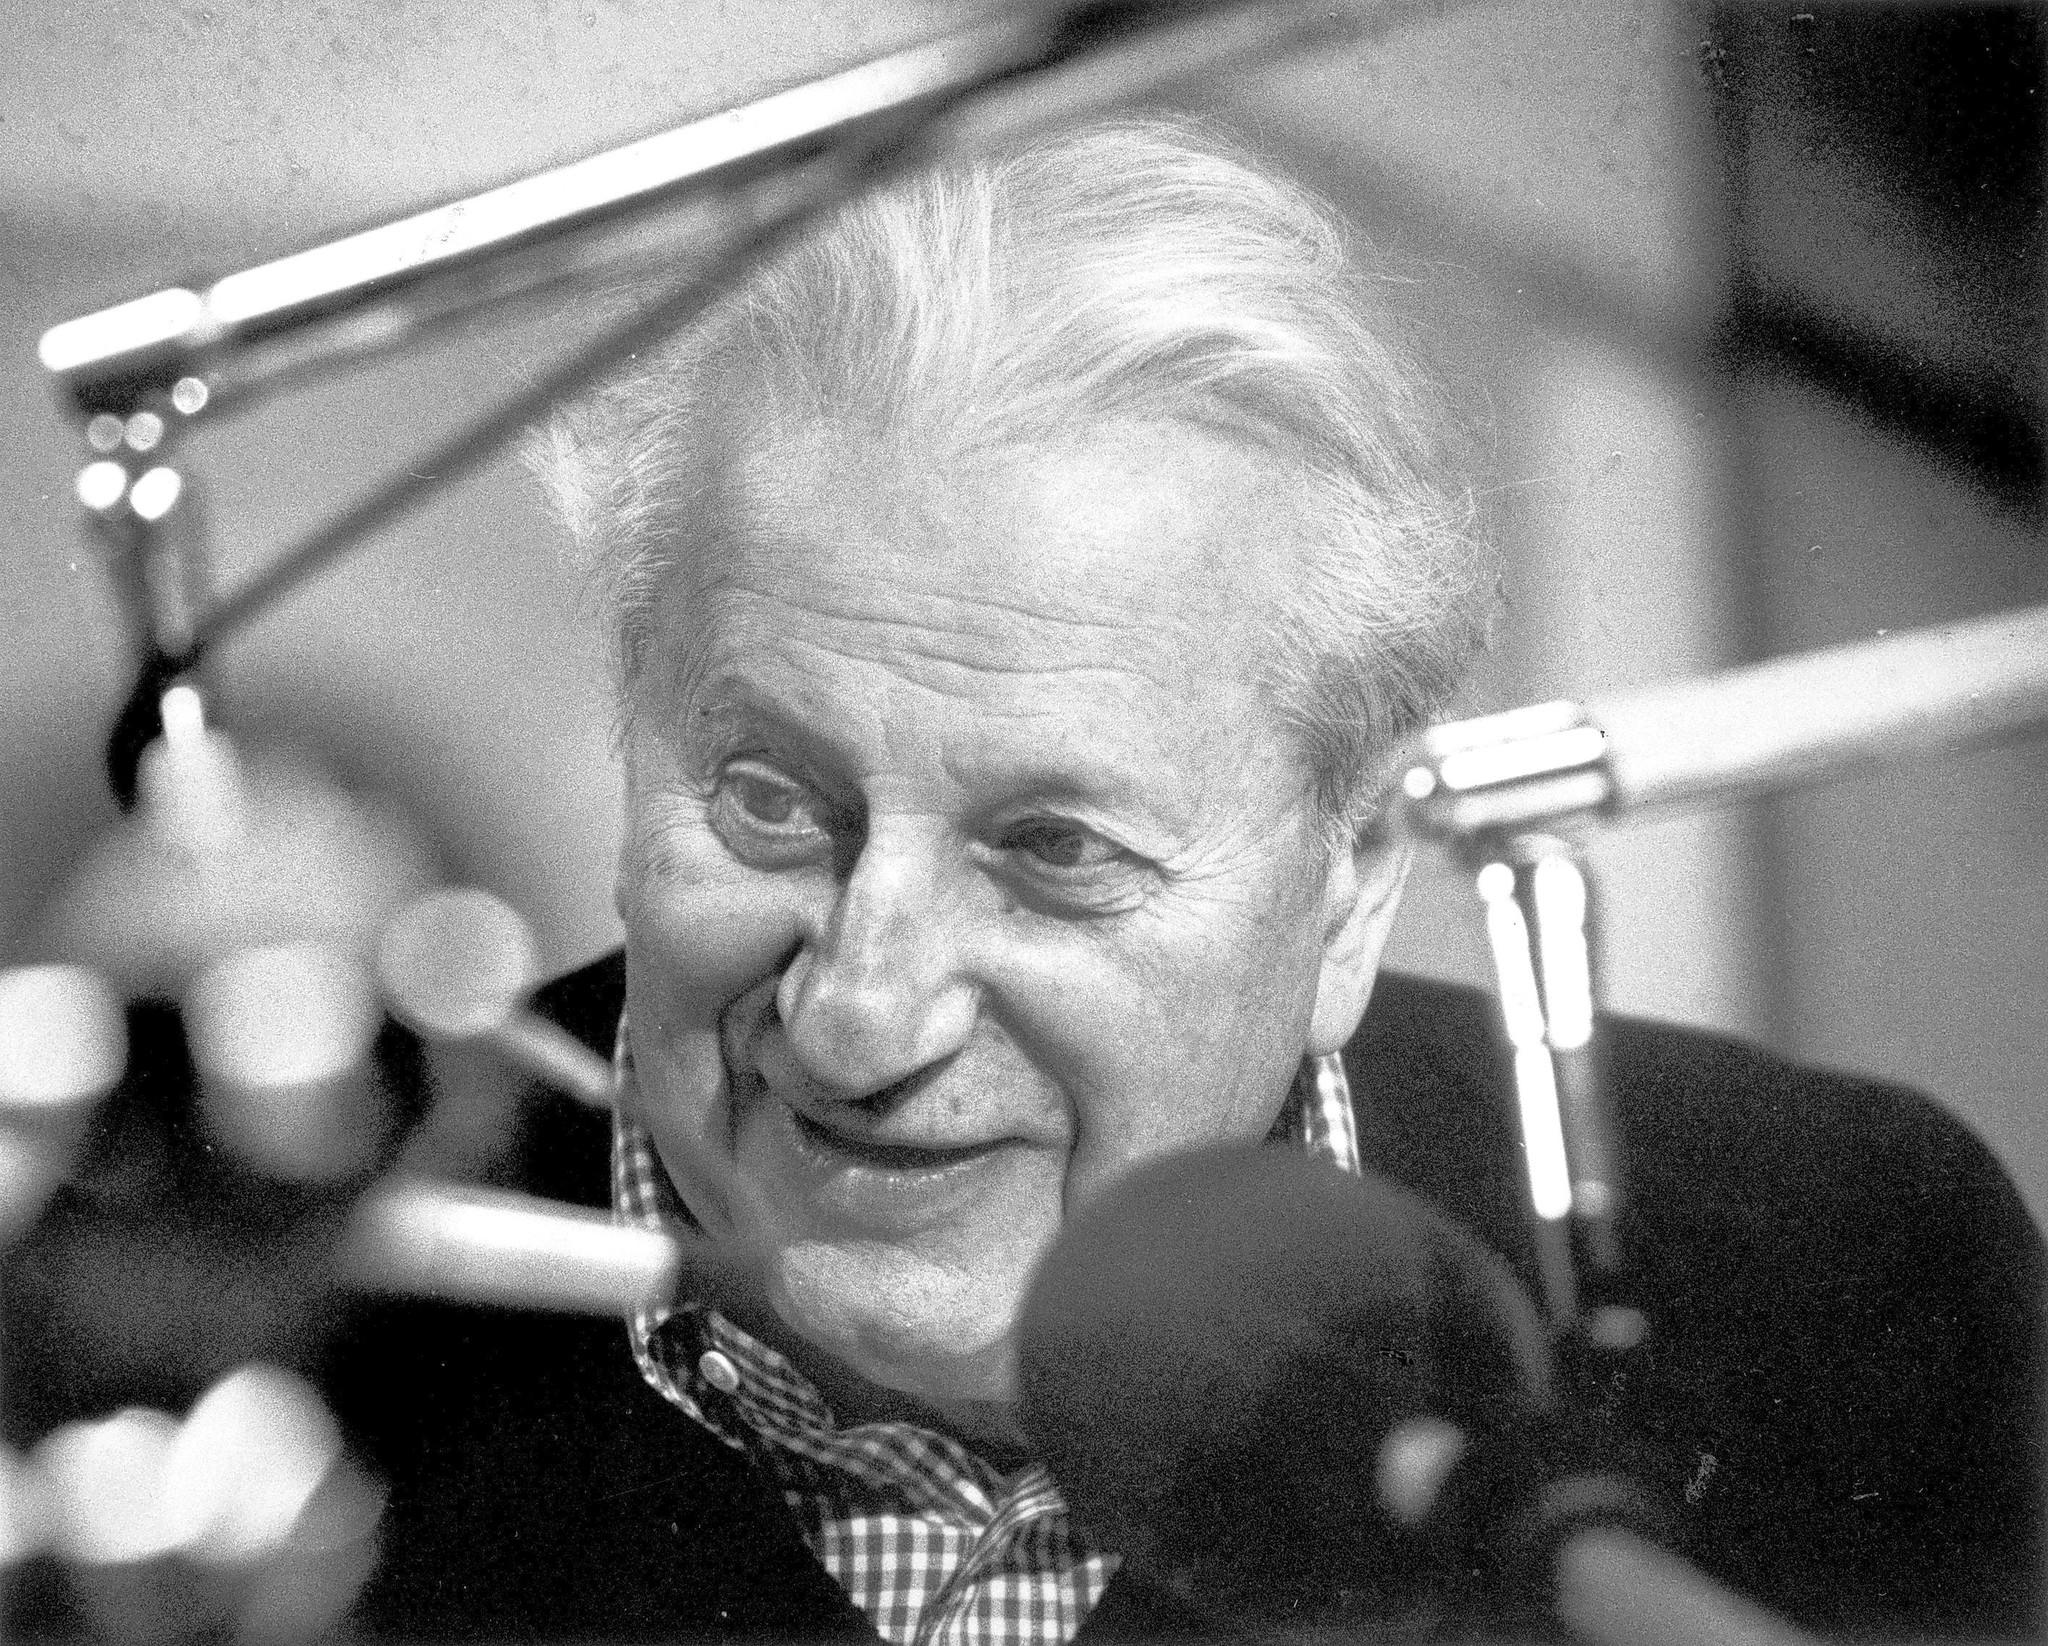 """As the University of Chicago prepares to honor Studs Terkel with the """"Let's Get Working: Chicago Celebrates Studs"""" festival this week, authors Dave Isay and Alex Kotlowitz talk about Terkel's influence and integrity."""